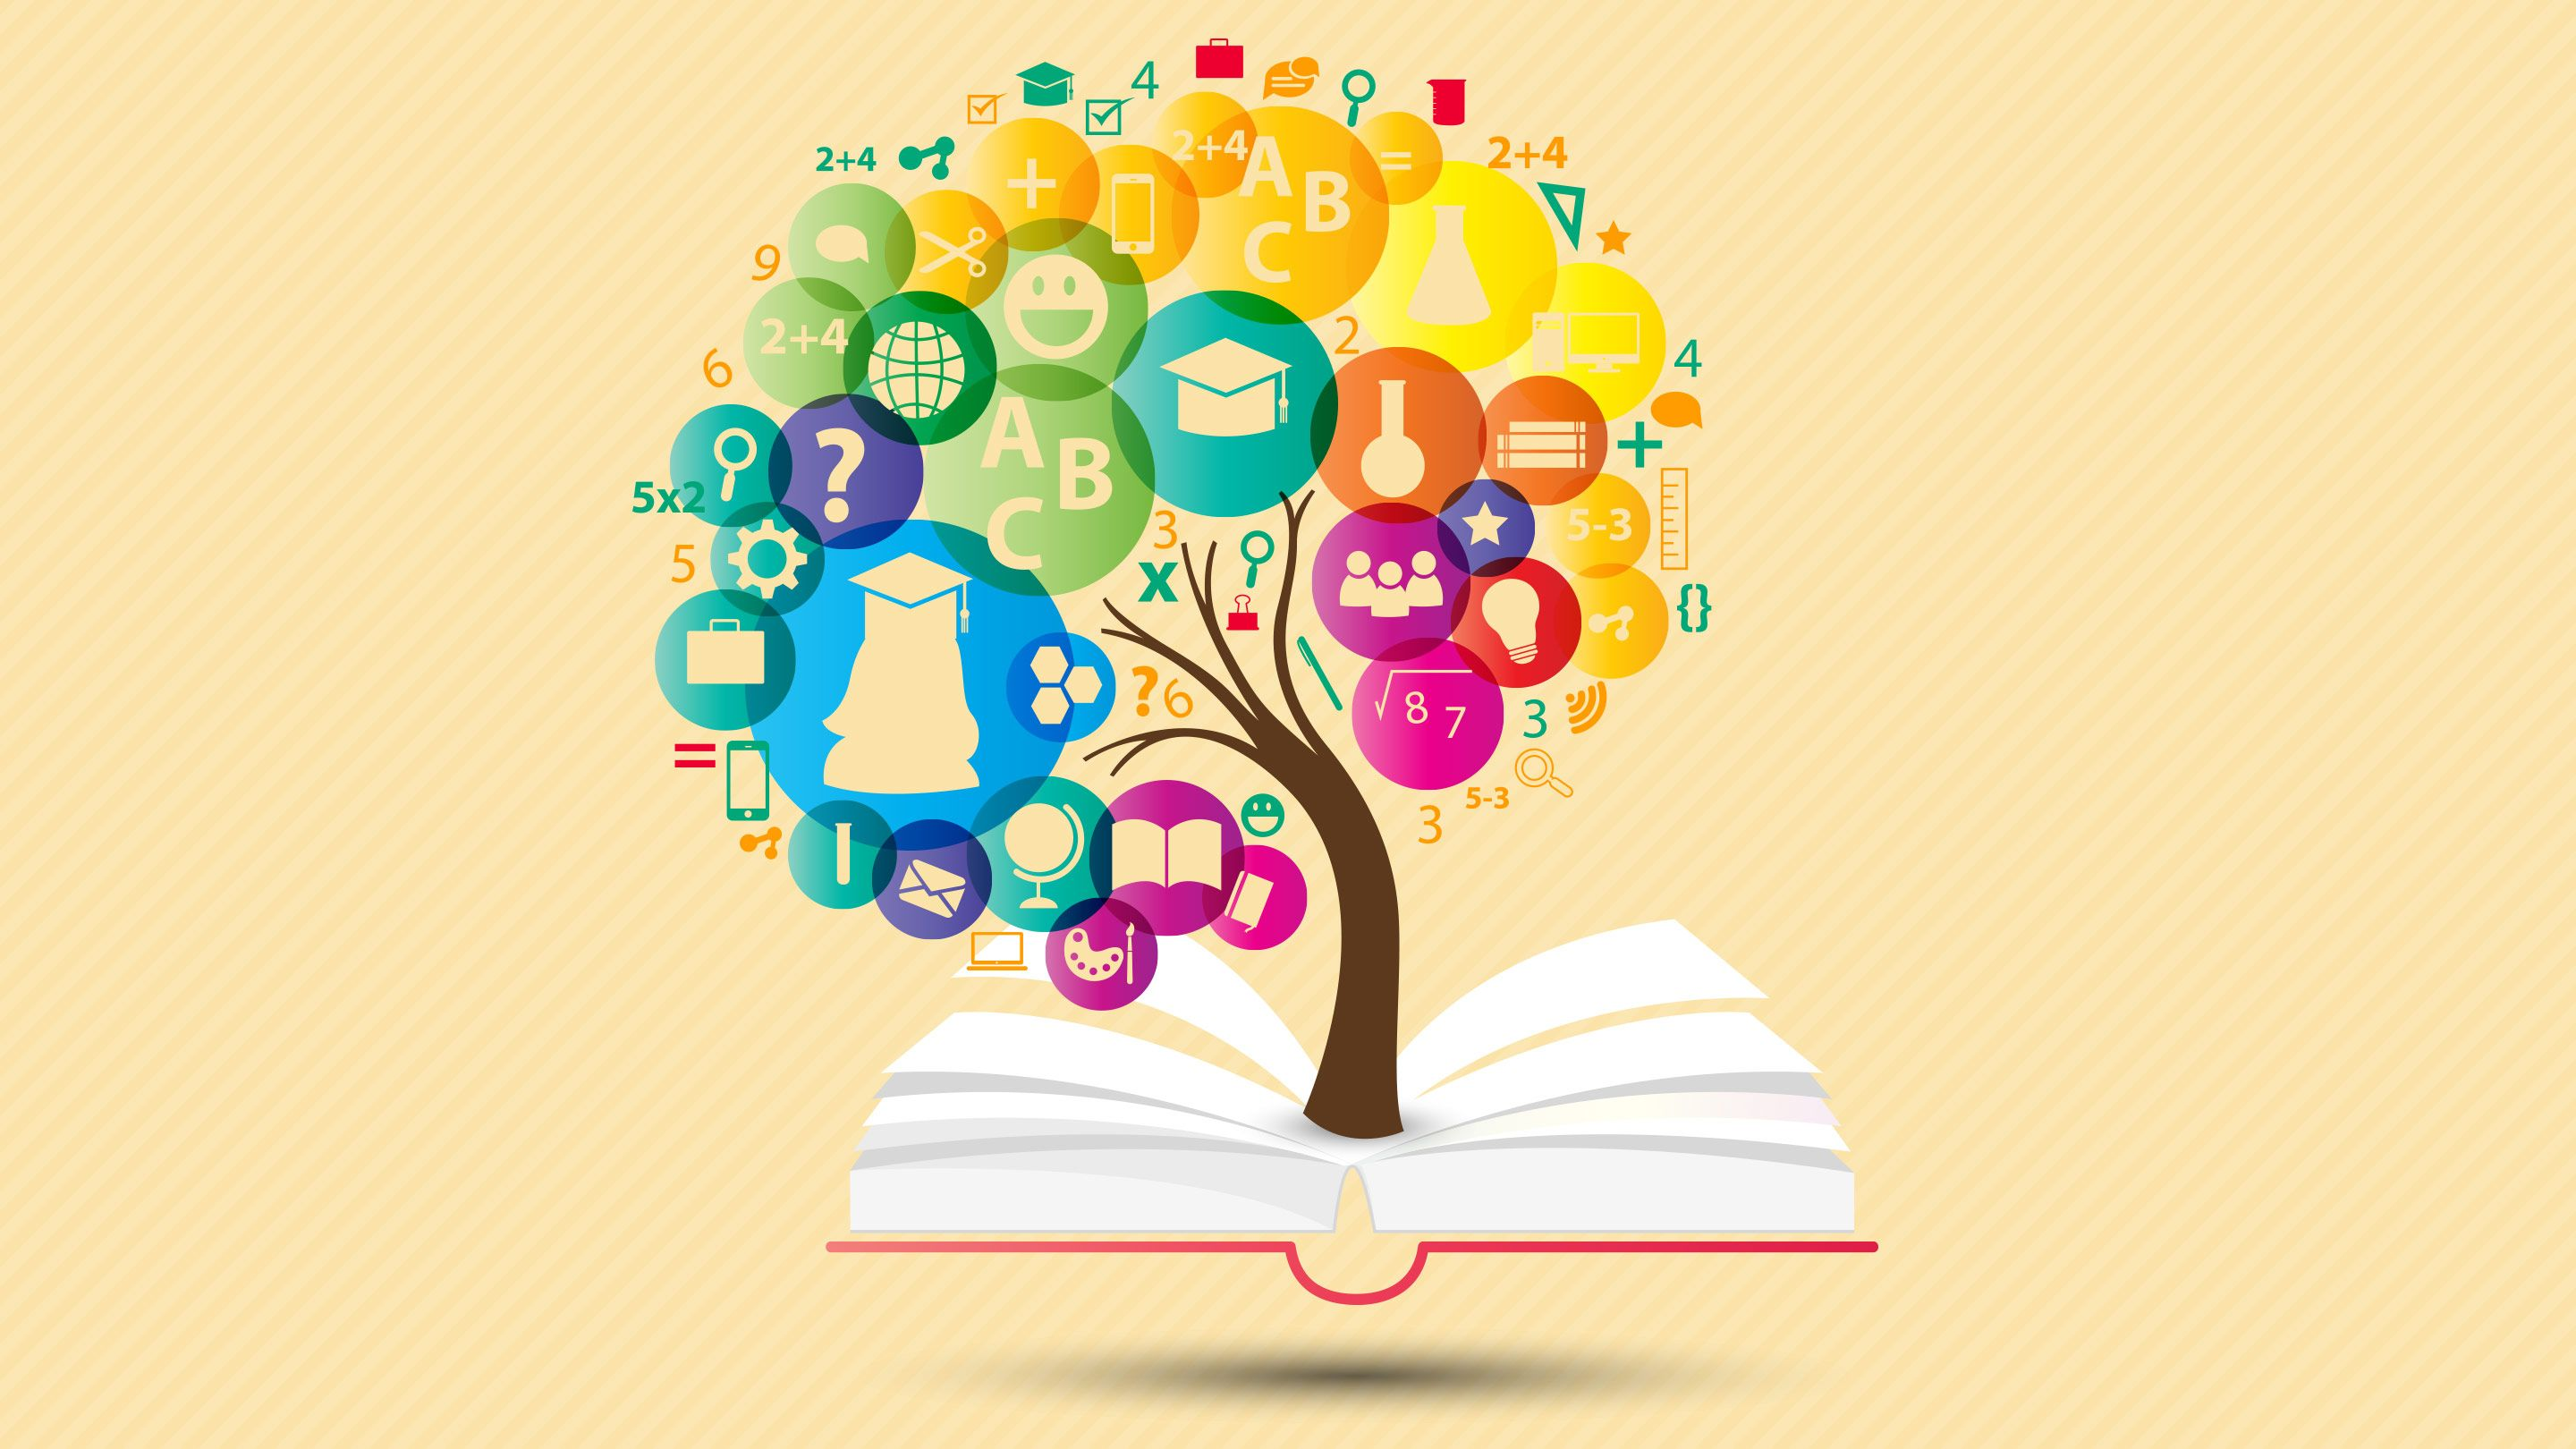 Illustration of a tree growing out of an open book; the leaves are icons that indicate academic subjects